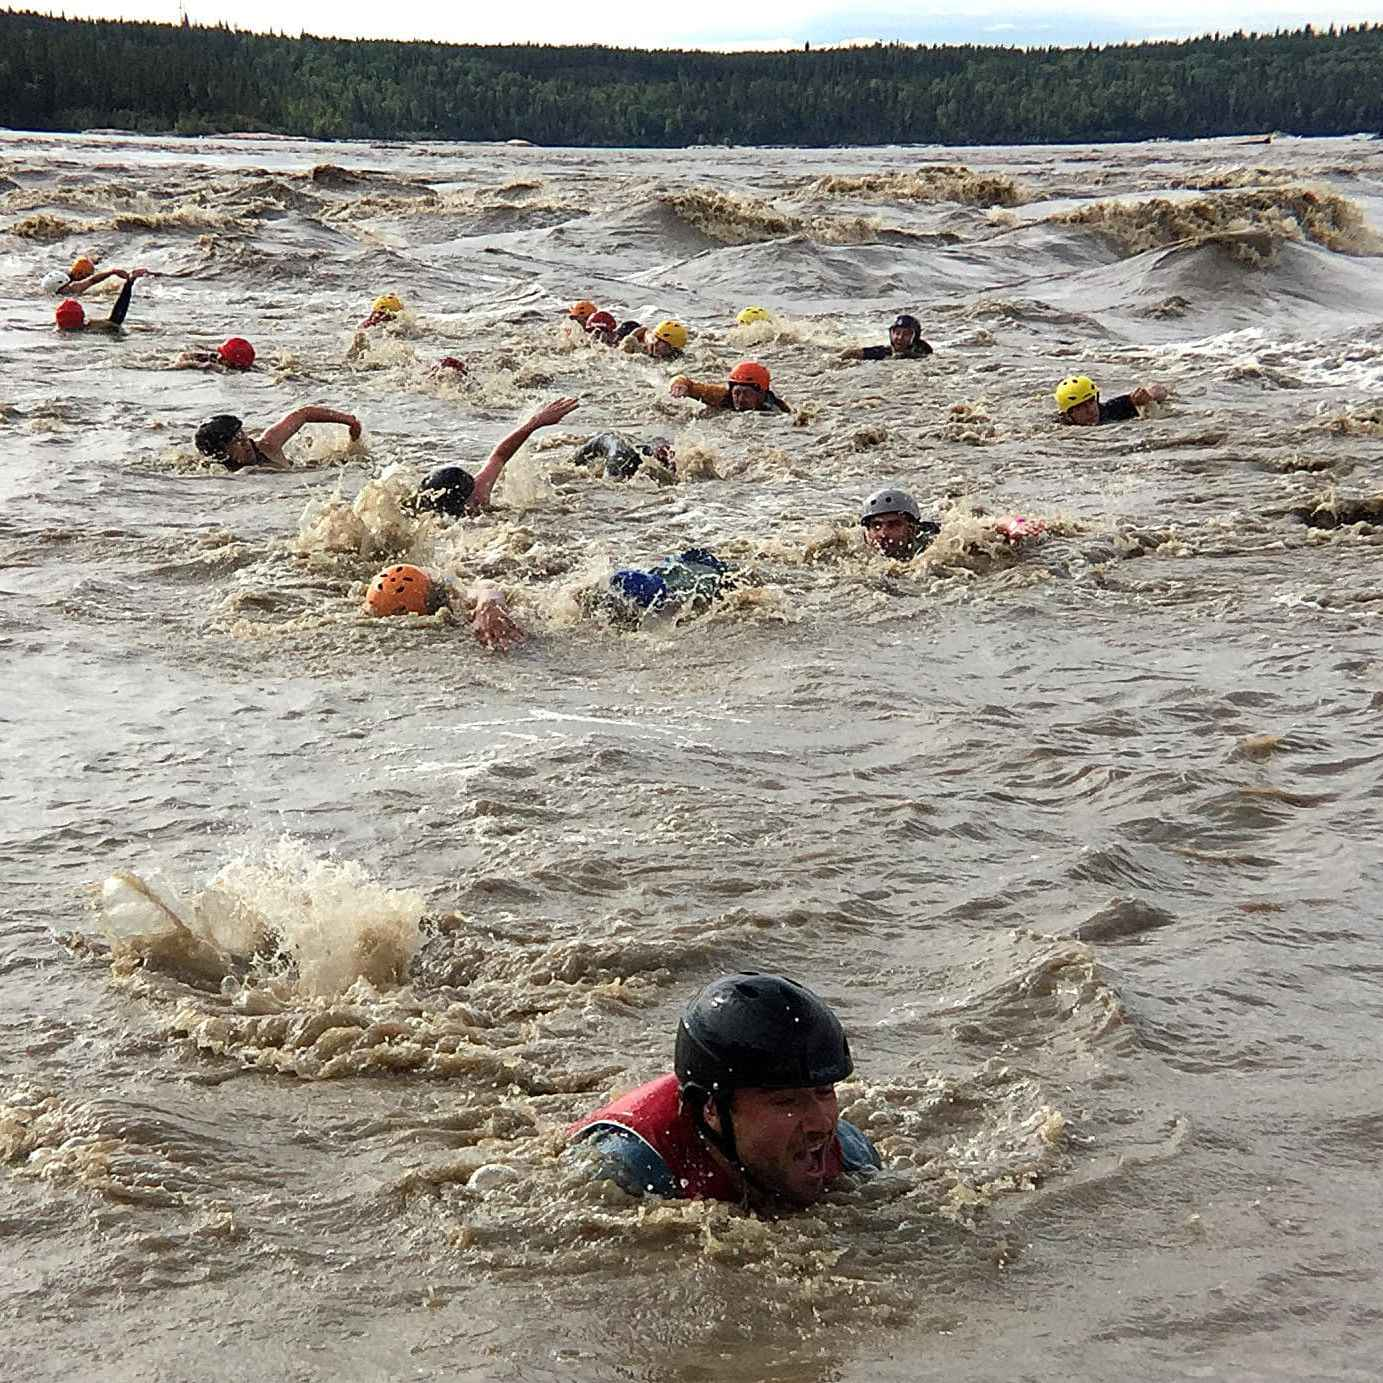 Swimmers compete to get through rapids.